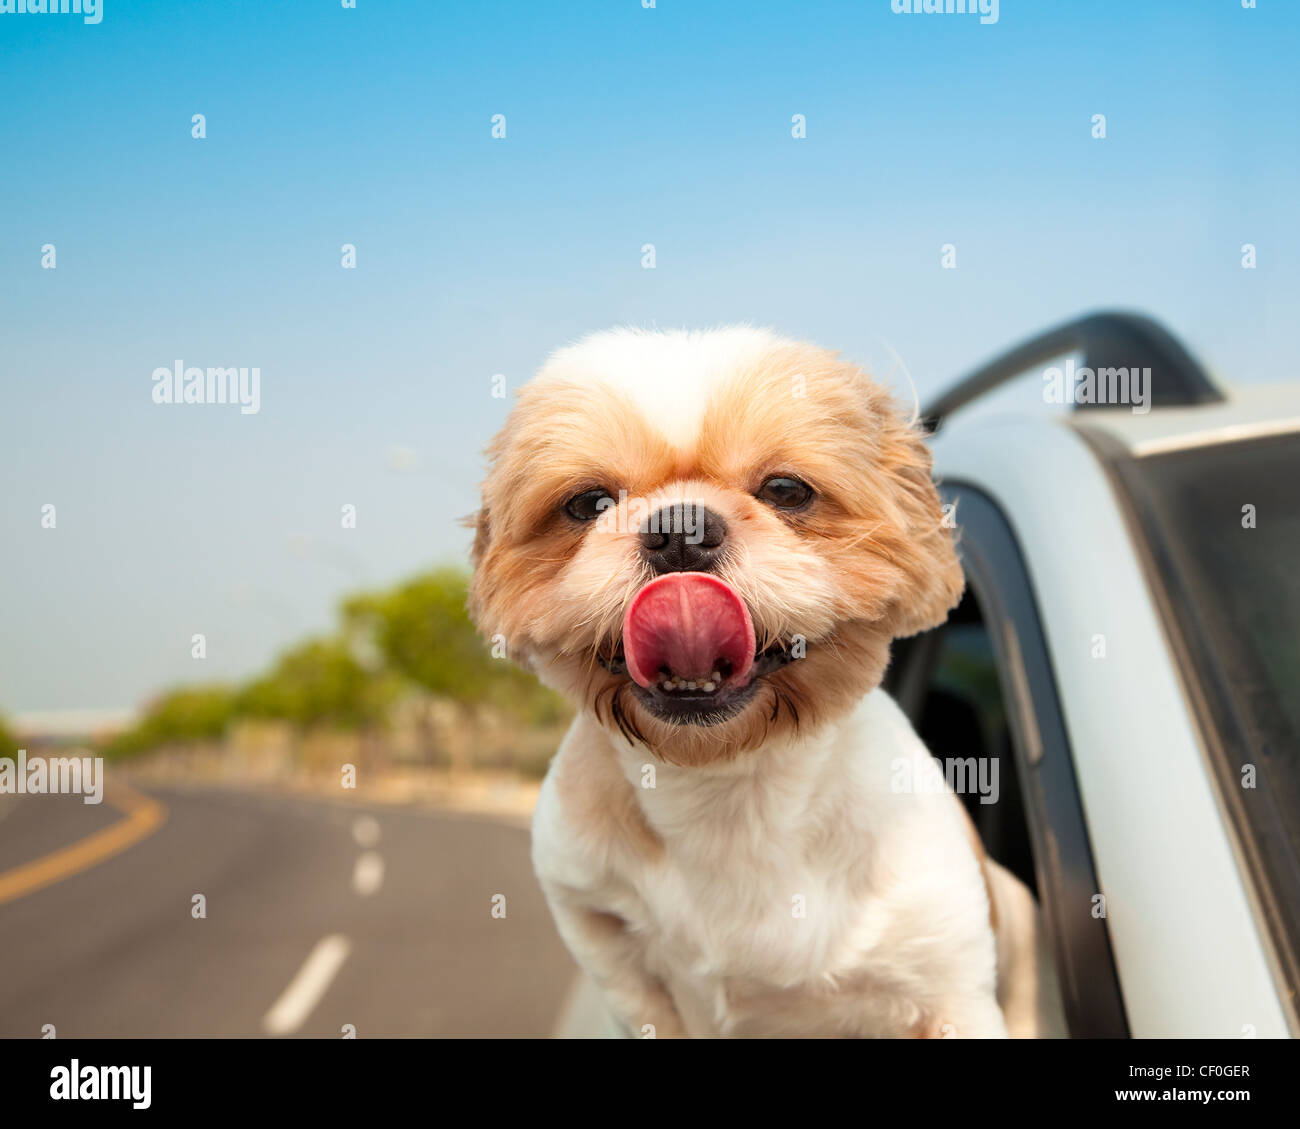 Dog in the Car - Stock Image